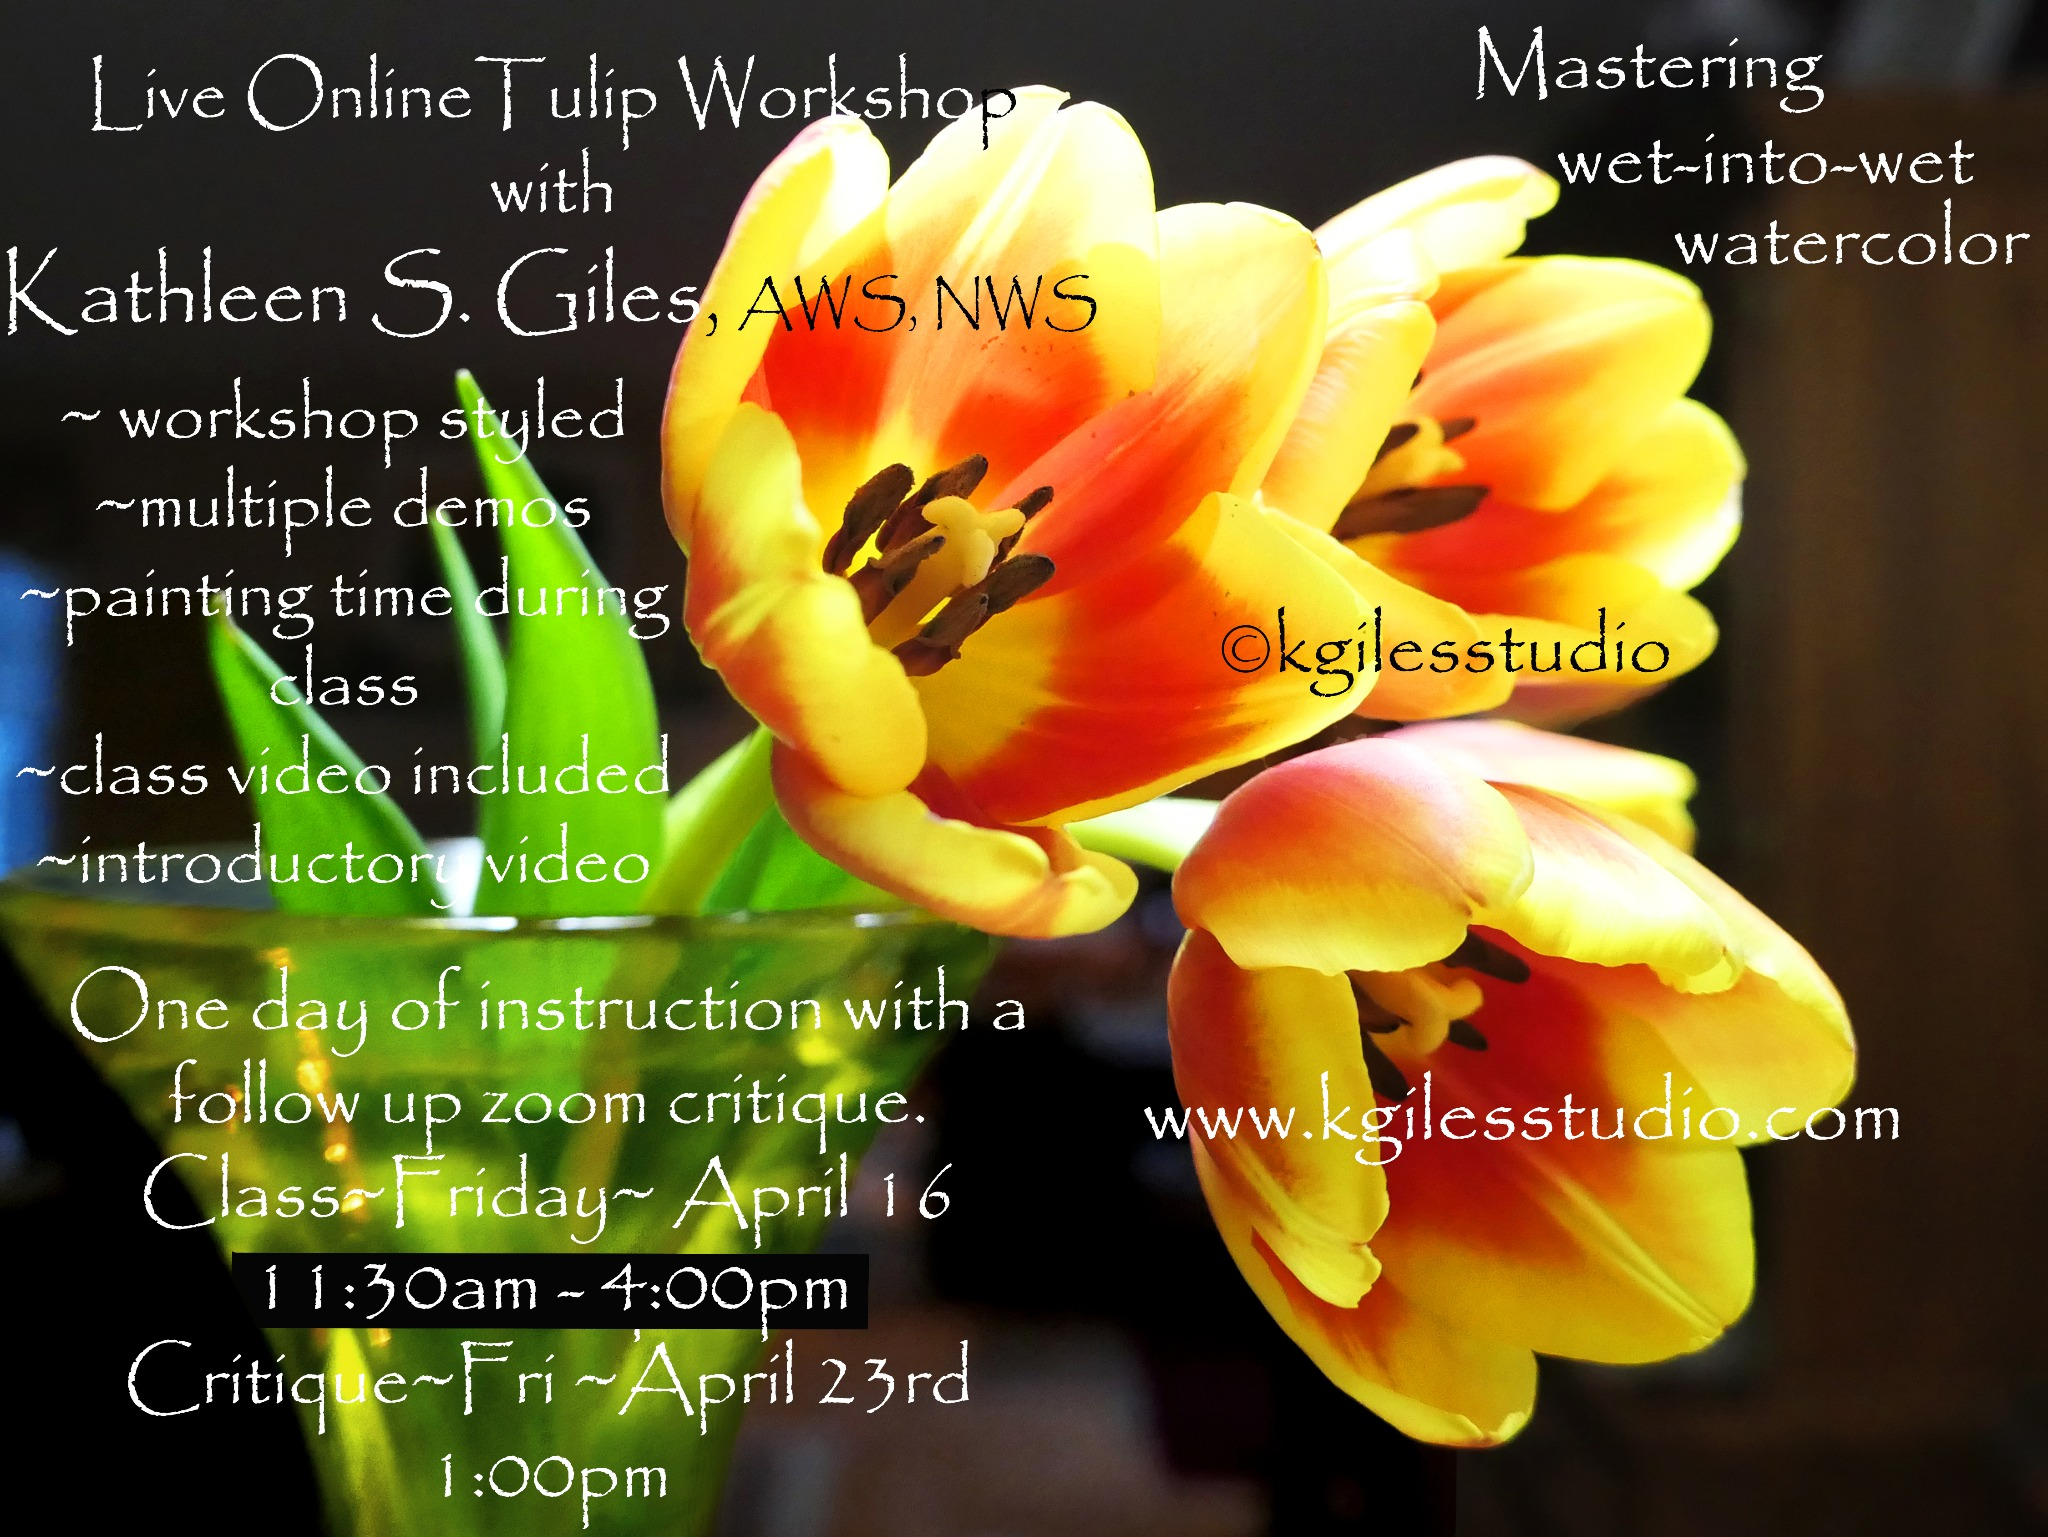 Live Zoom Tulip Workshop: April 16th with critique on April 23rd